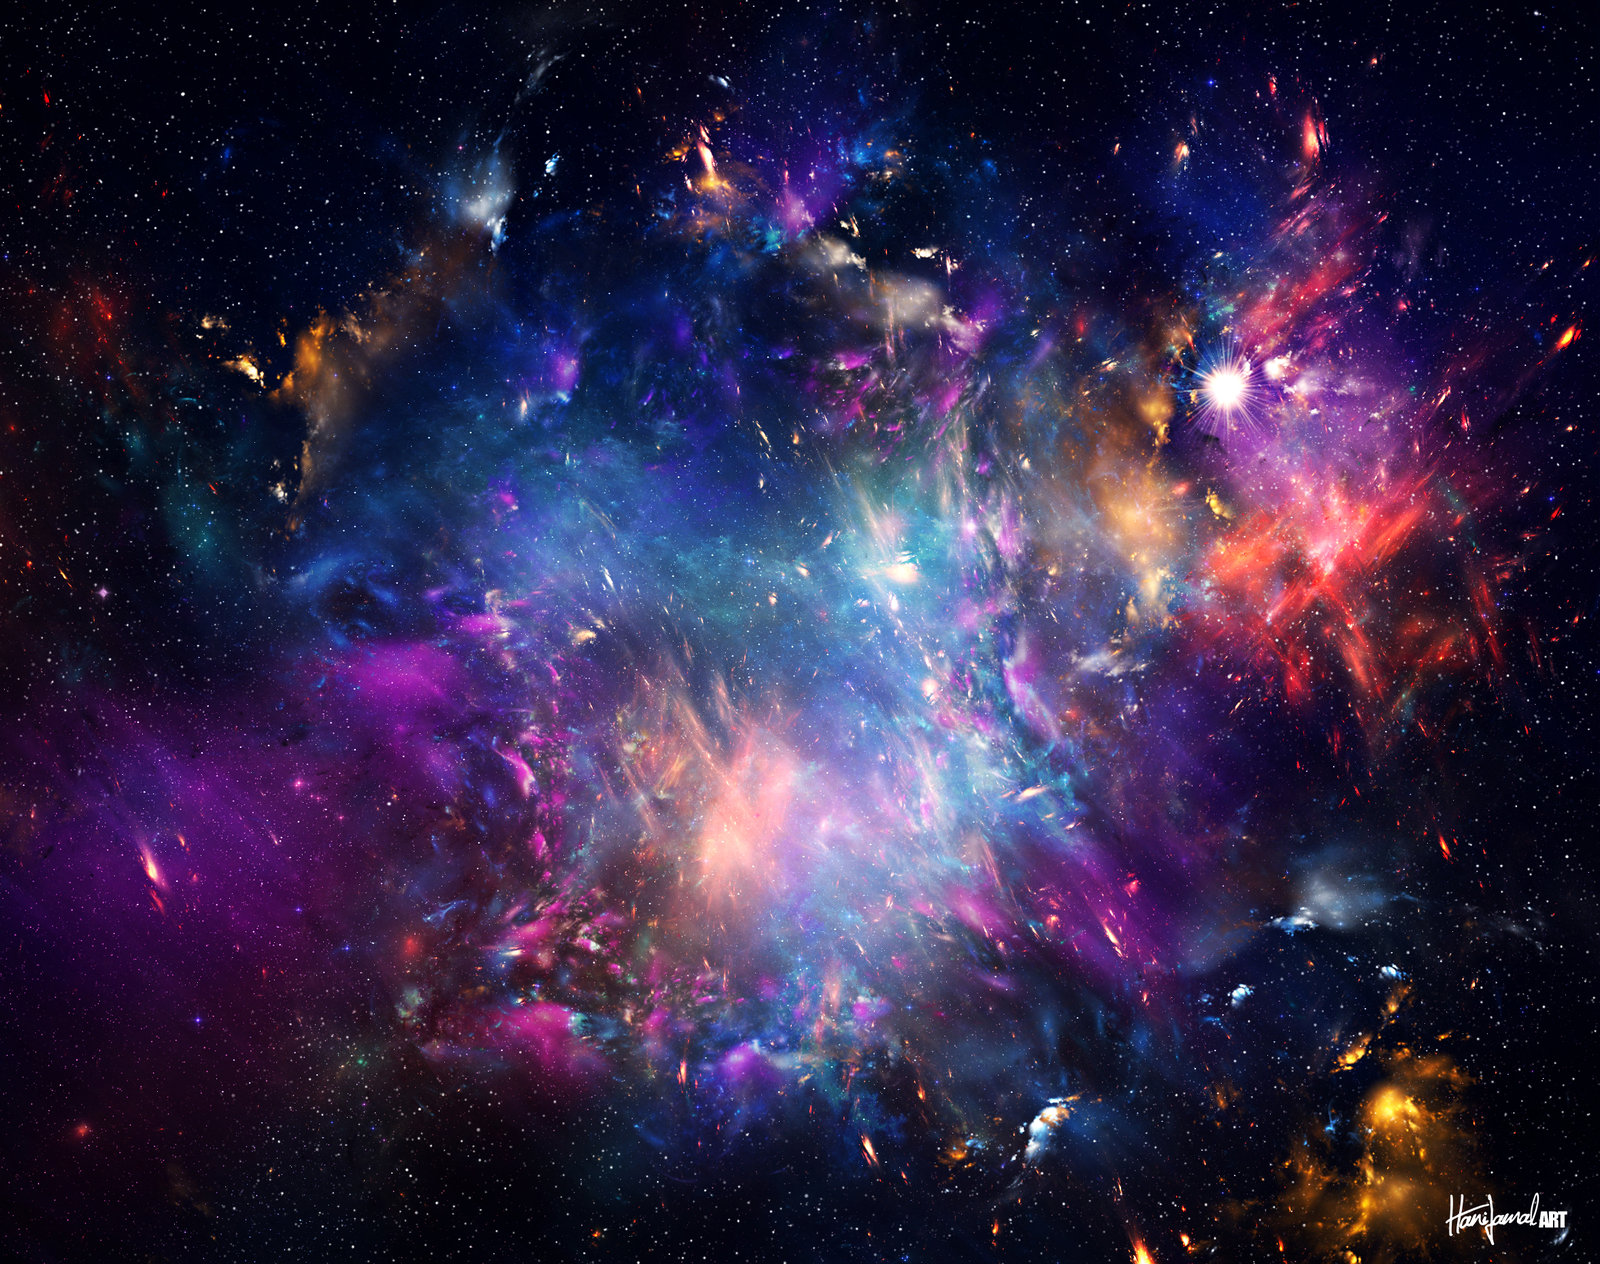 Galaxy Space Wallpaper 4k Apk Download: 8K Space Wallpaper